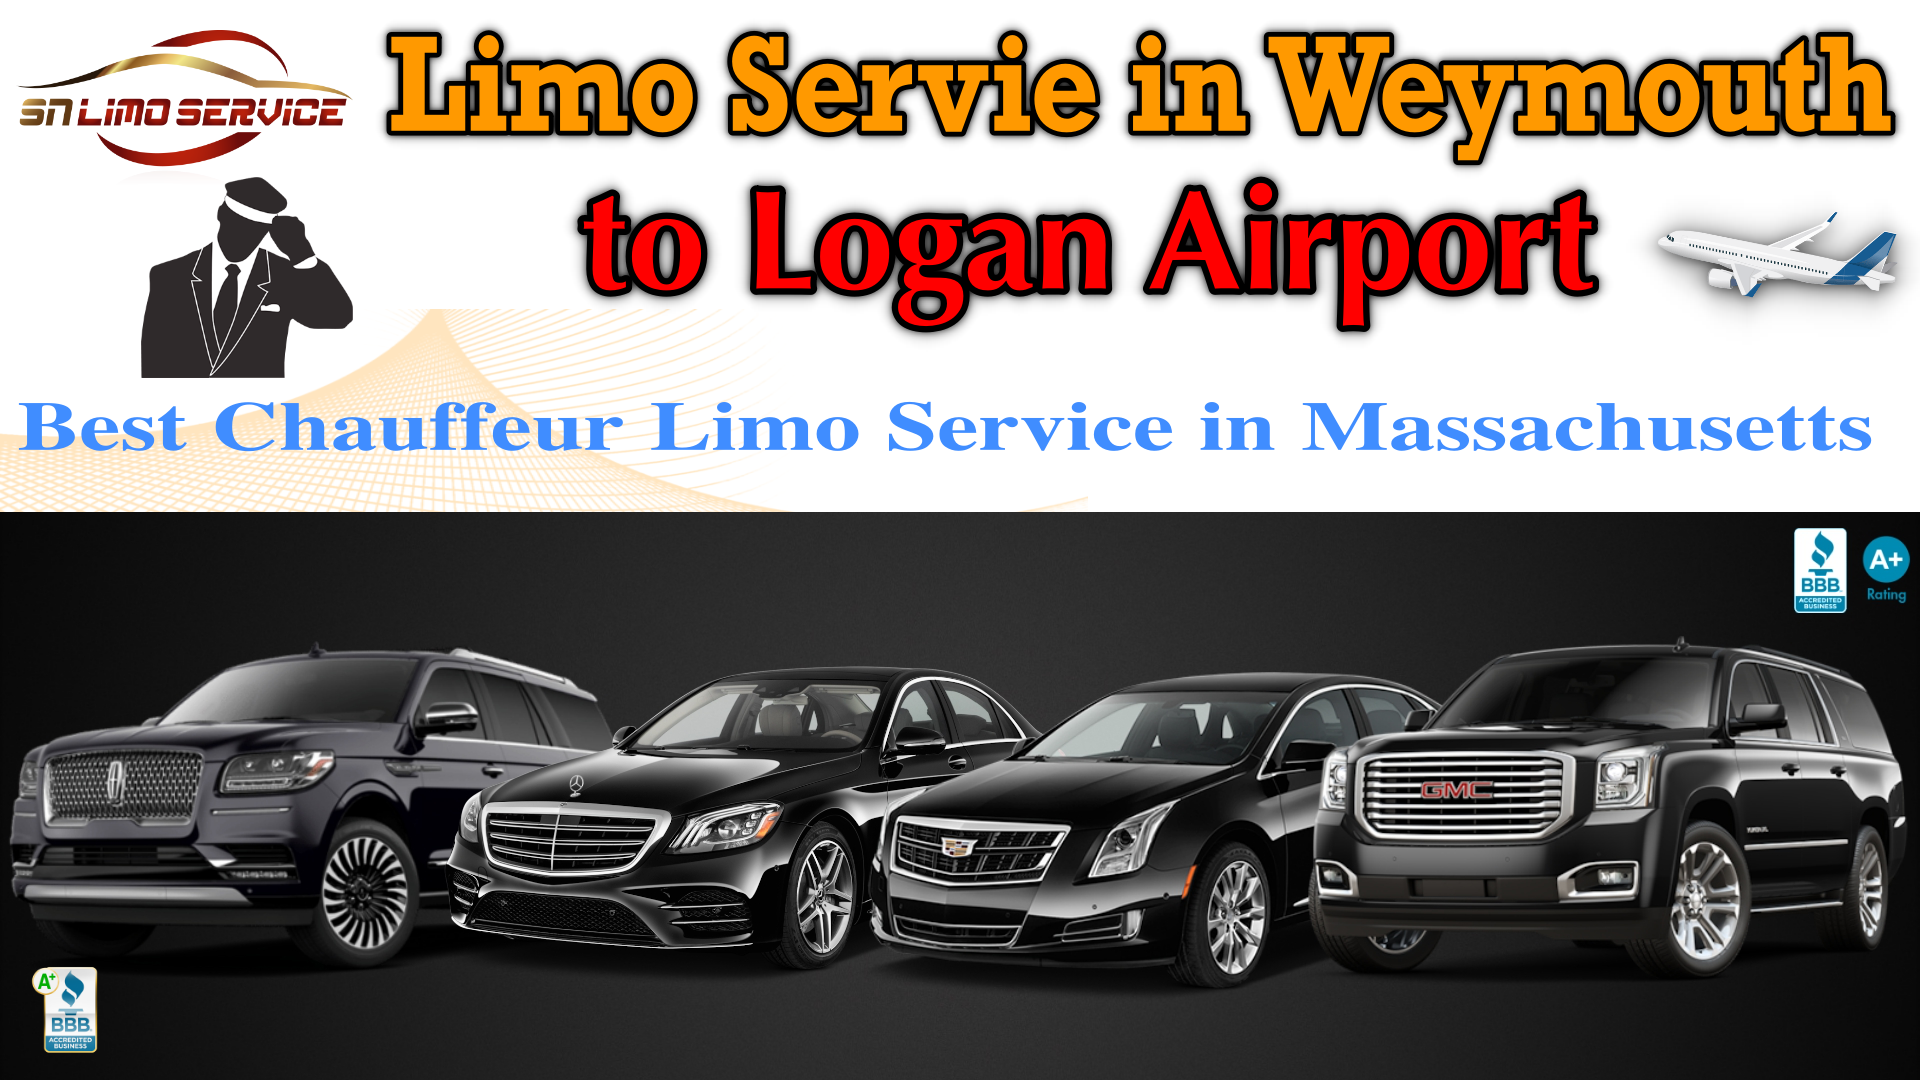 Limo Service Near Me South Shore Limo, Best suv, Service